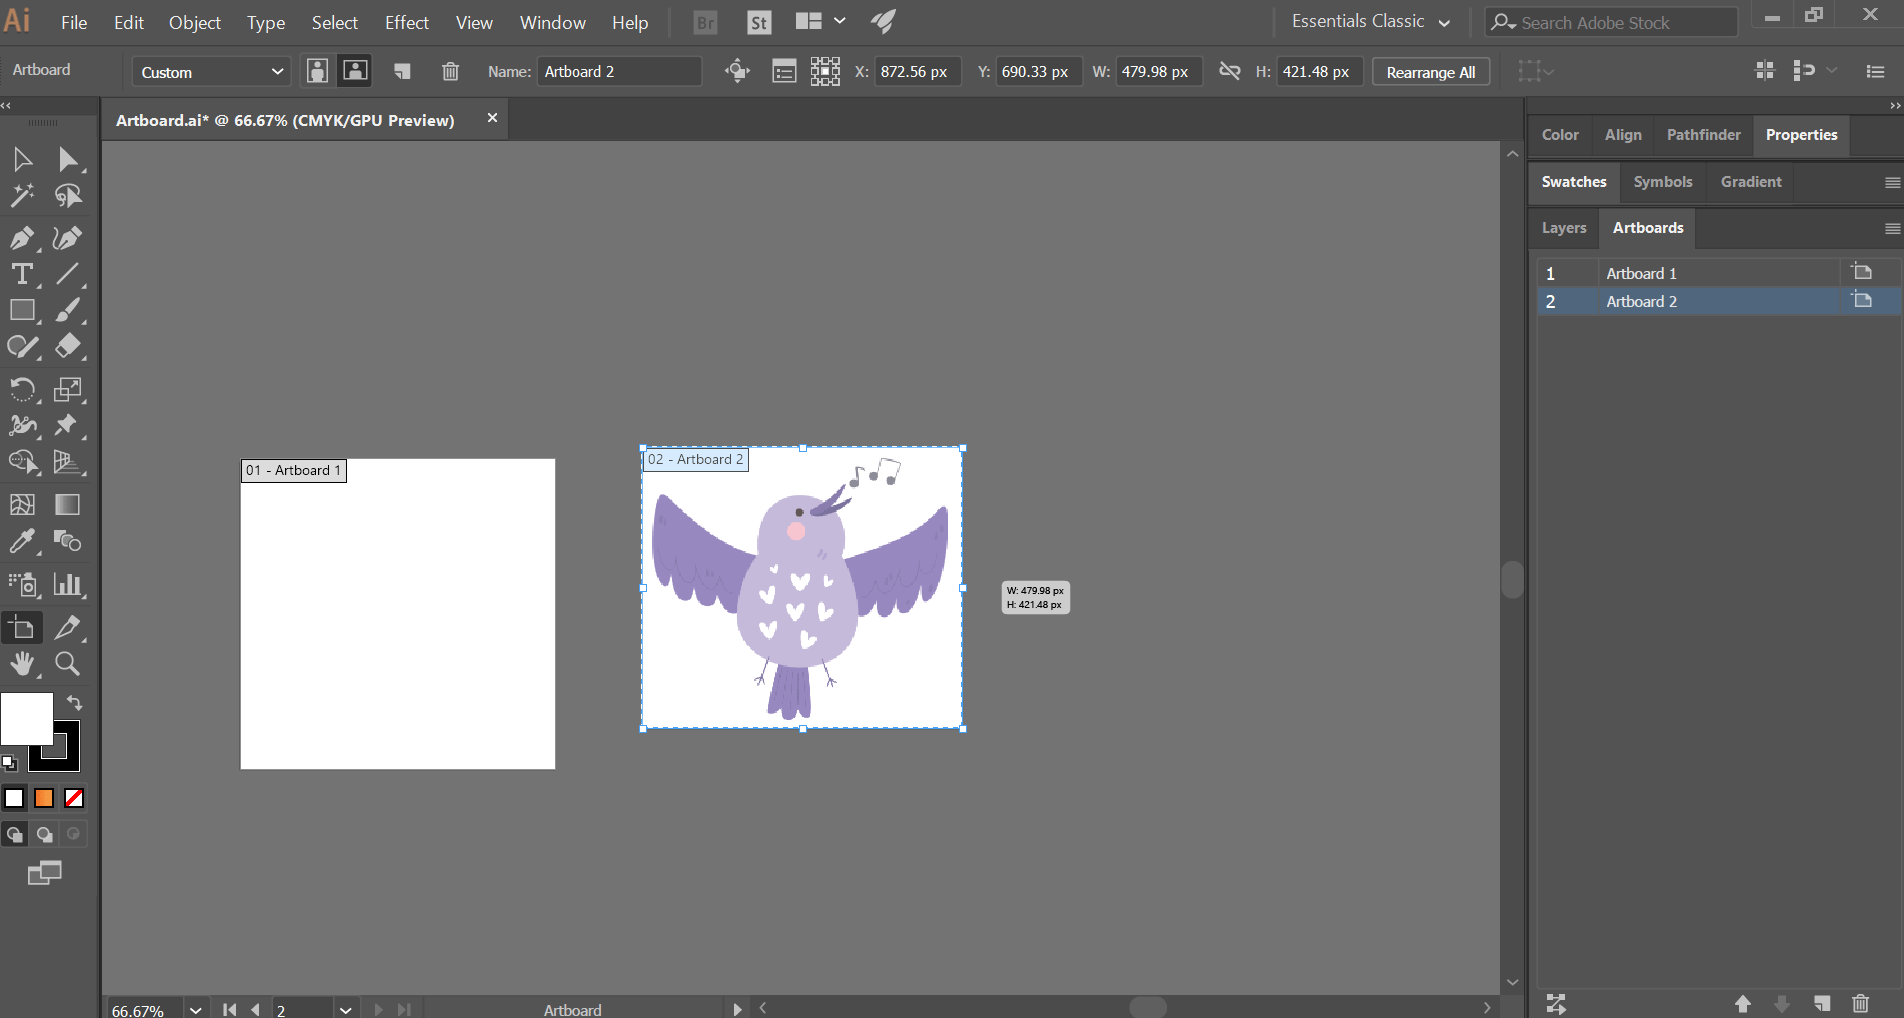 How to Change Artboard Size in Illustrator 1-6